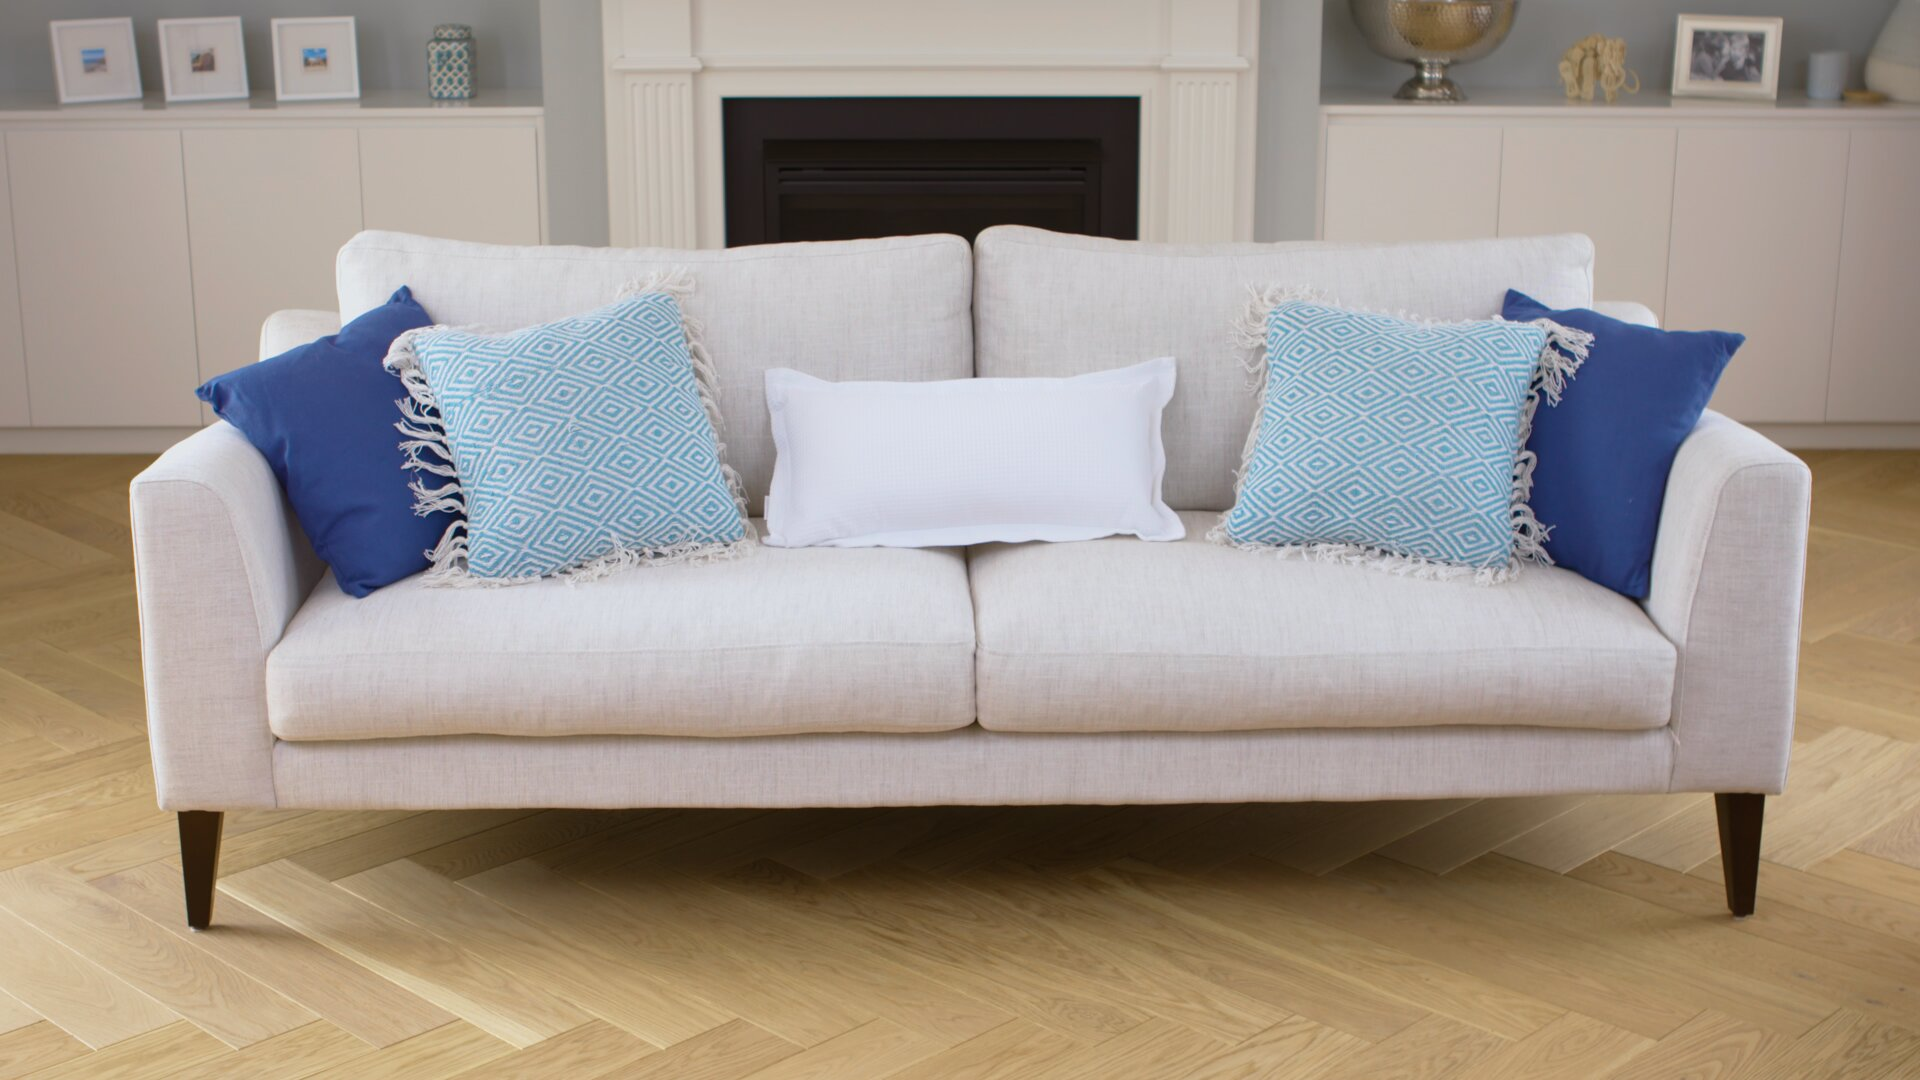 Get Comfortable With Our Extensive Range Of Cushions